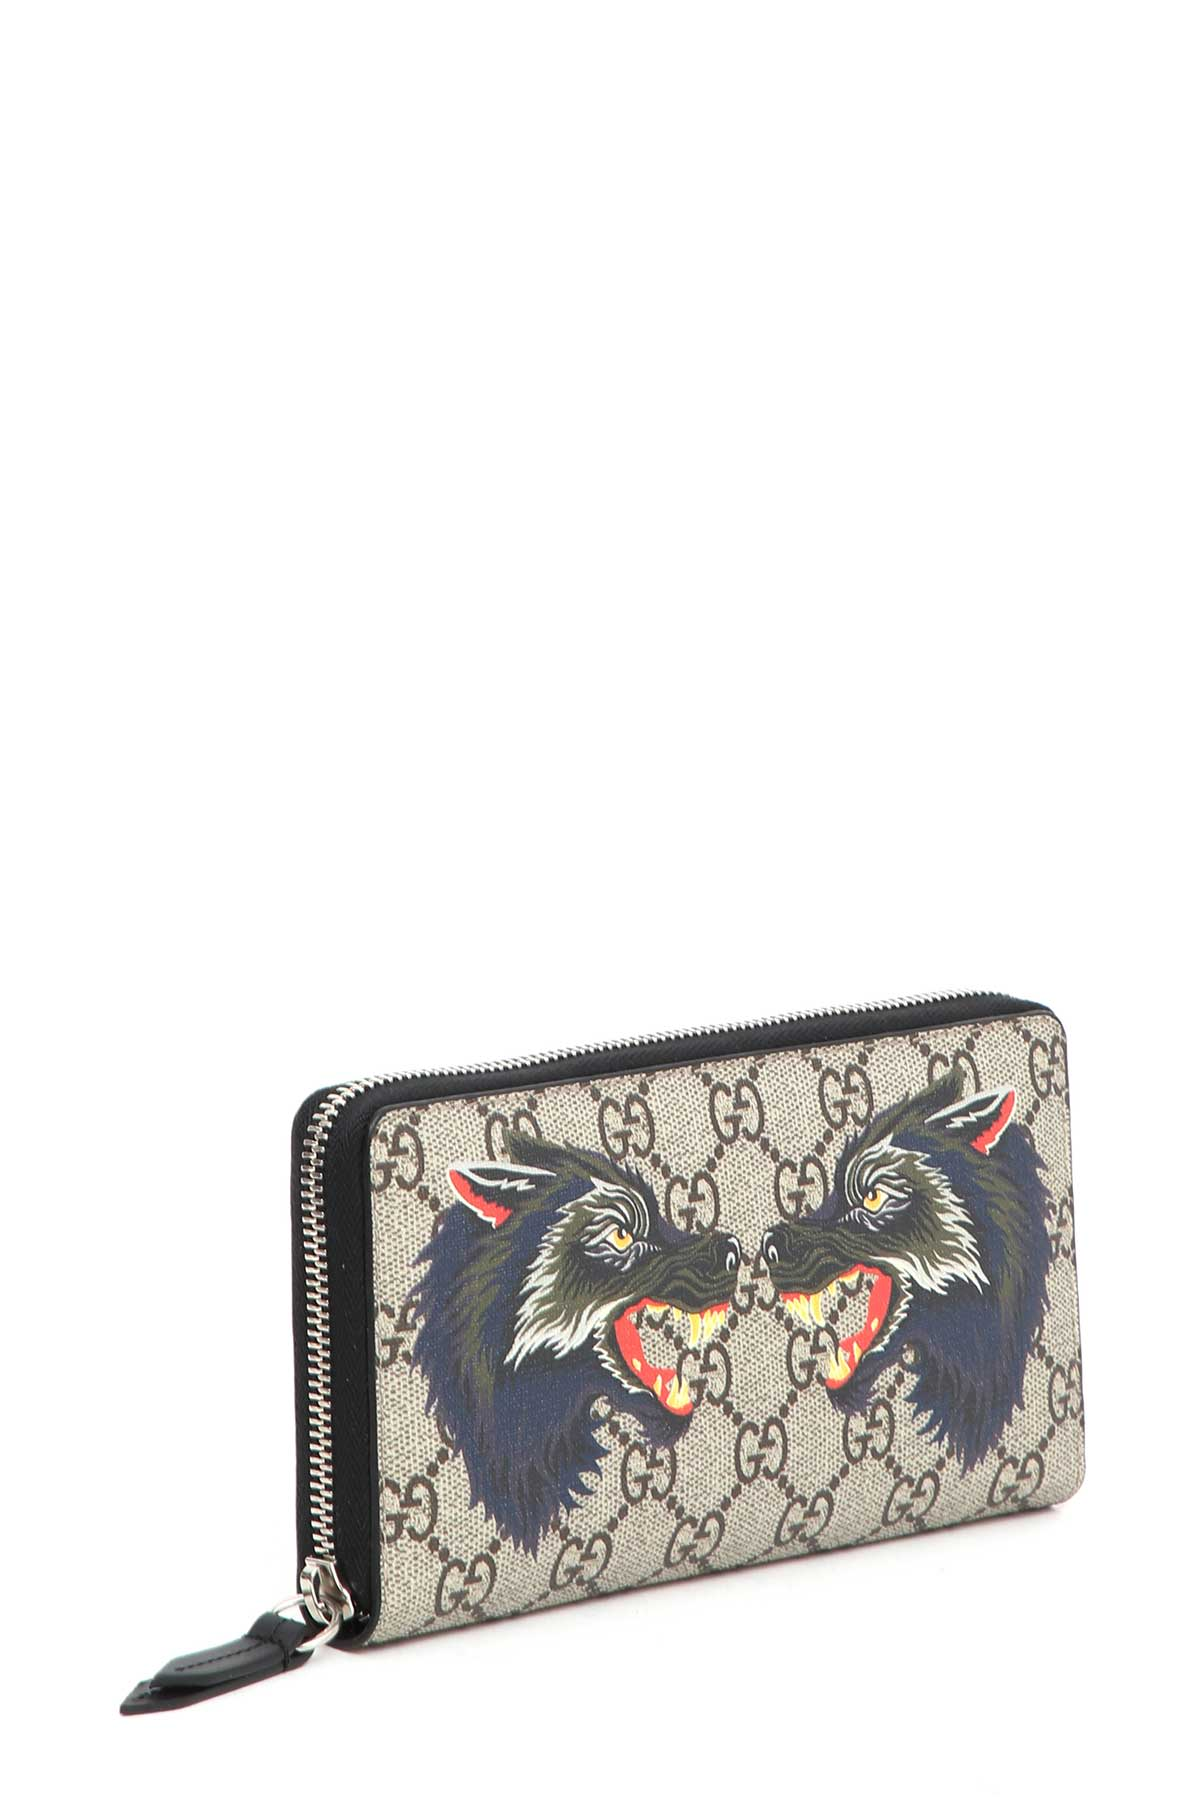 ad1cf98473b GUCCI Wallet With Wolf Print